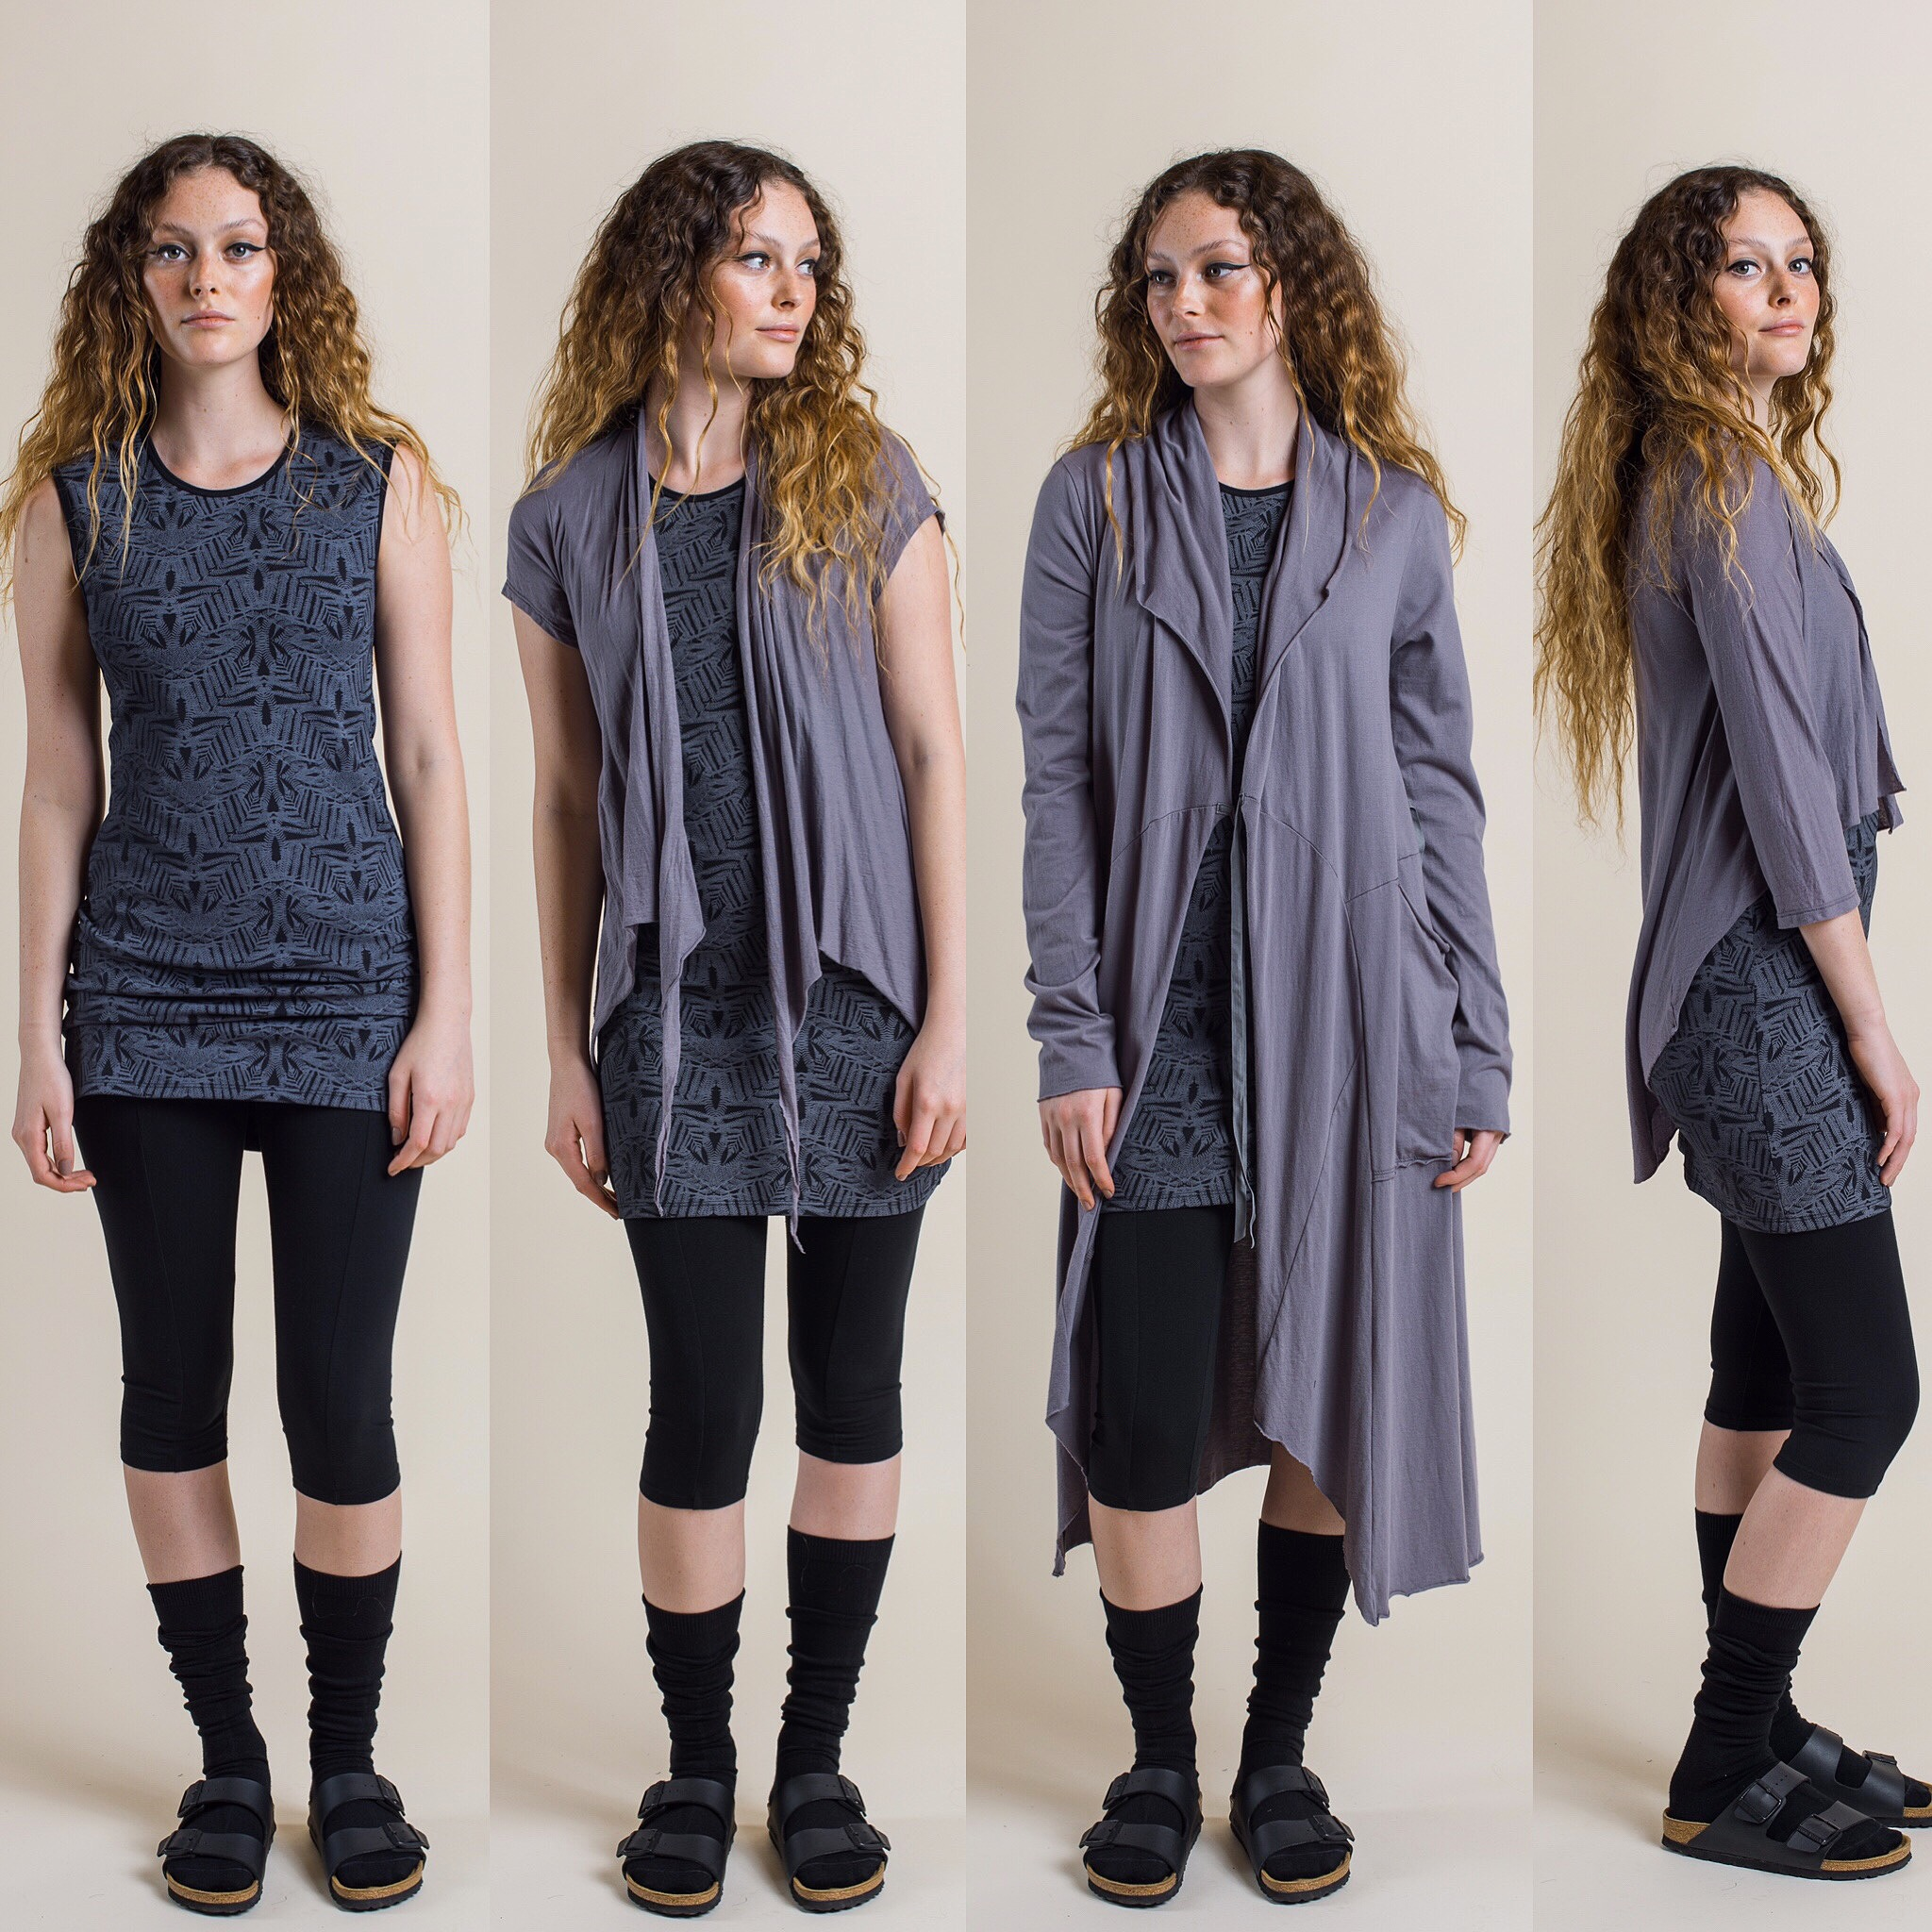 Lara 3/4 leggings with Josie dress, then added Quirk short sleeved Shrug or Annabel Coat or Ester cardi